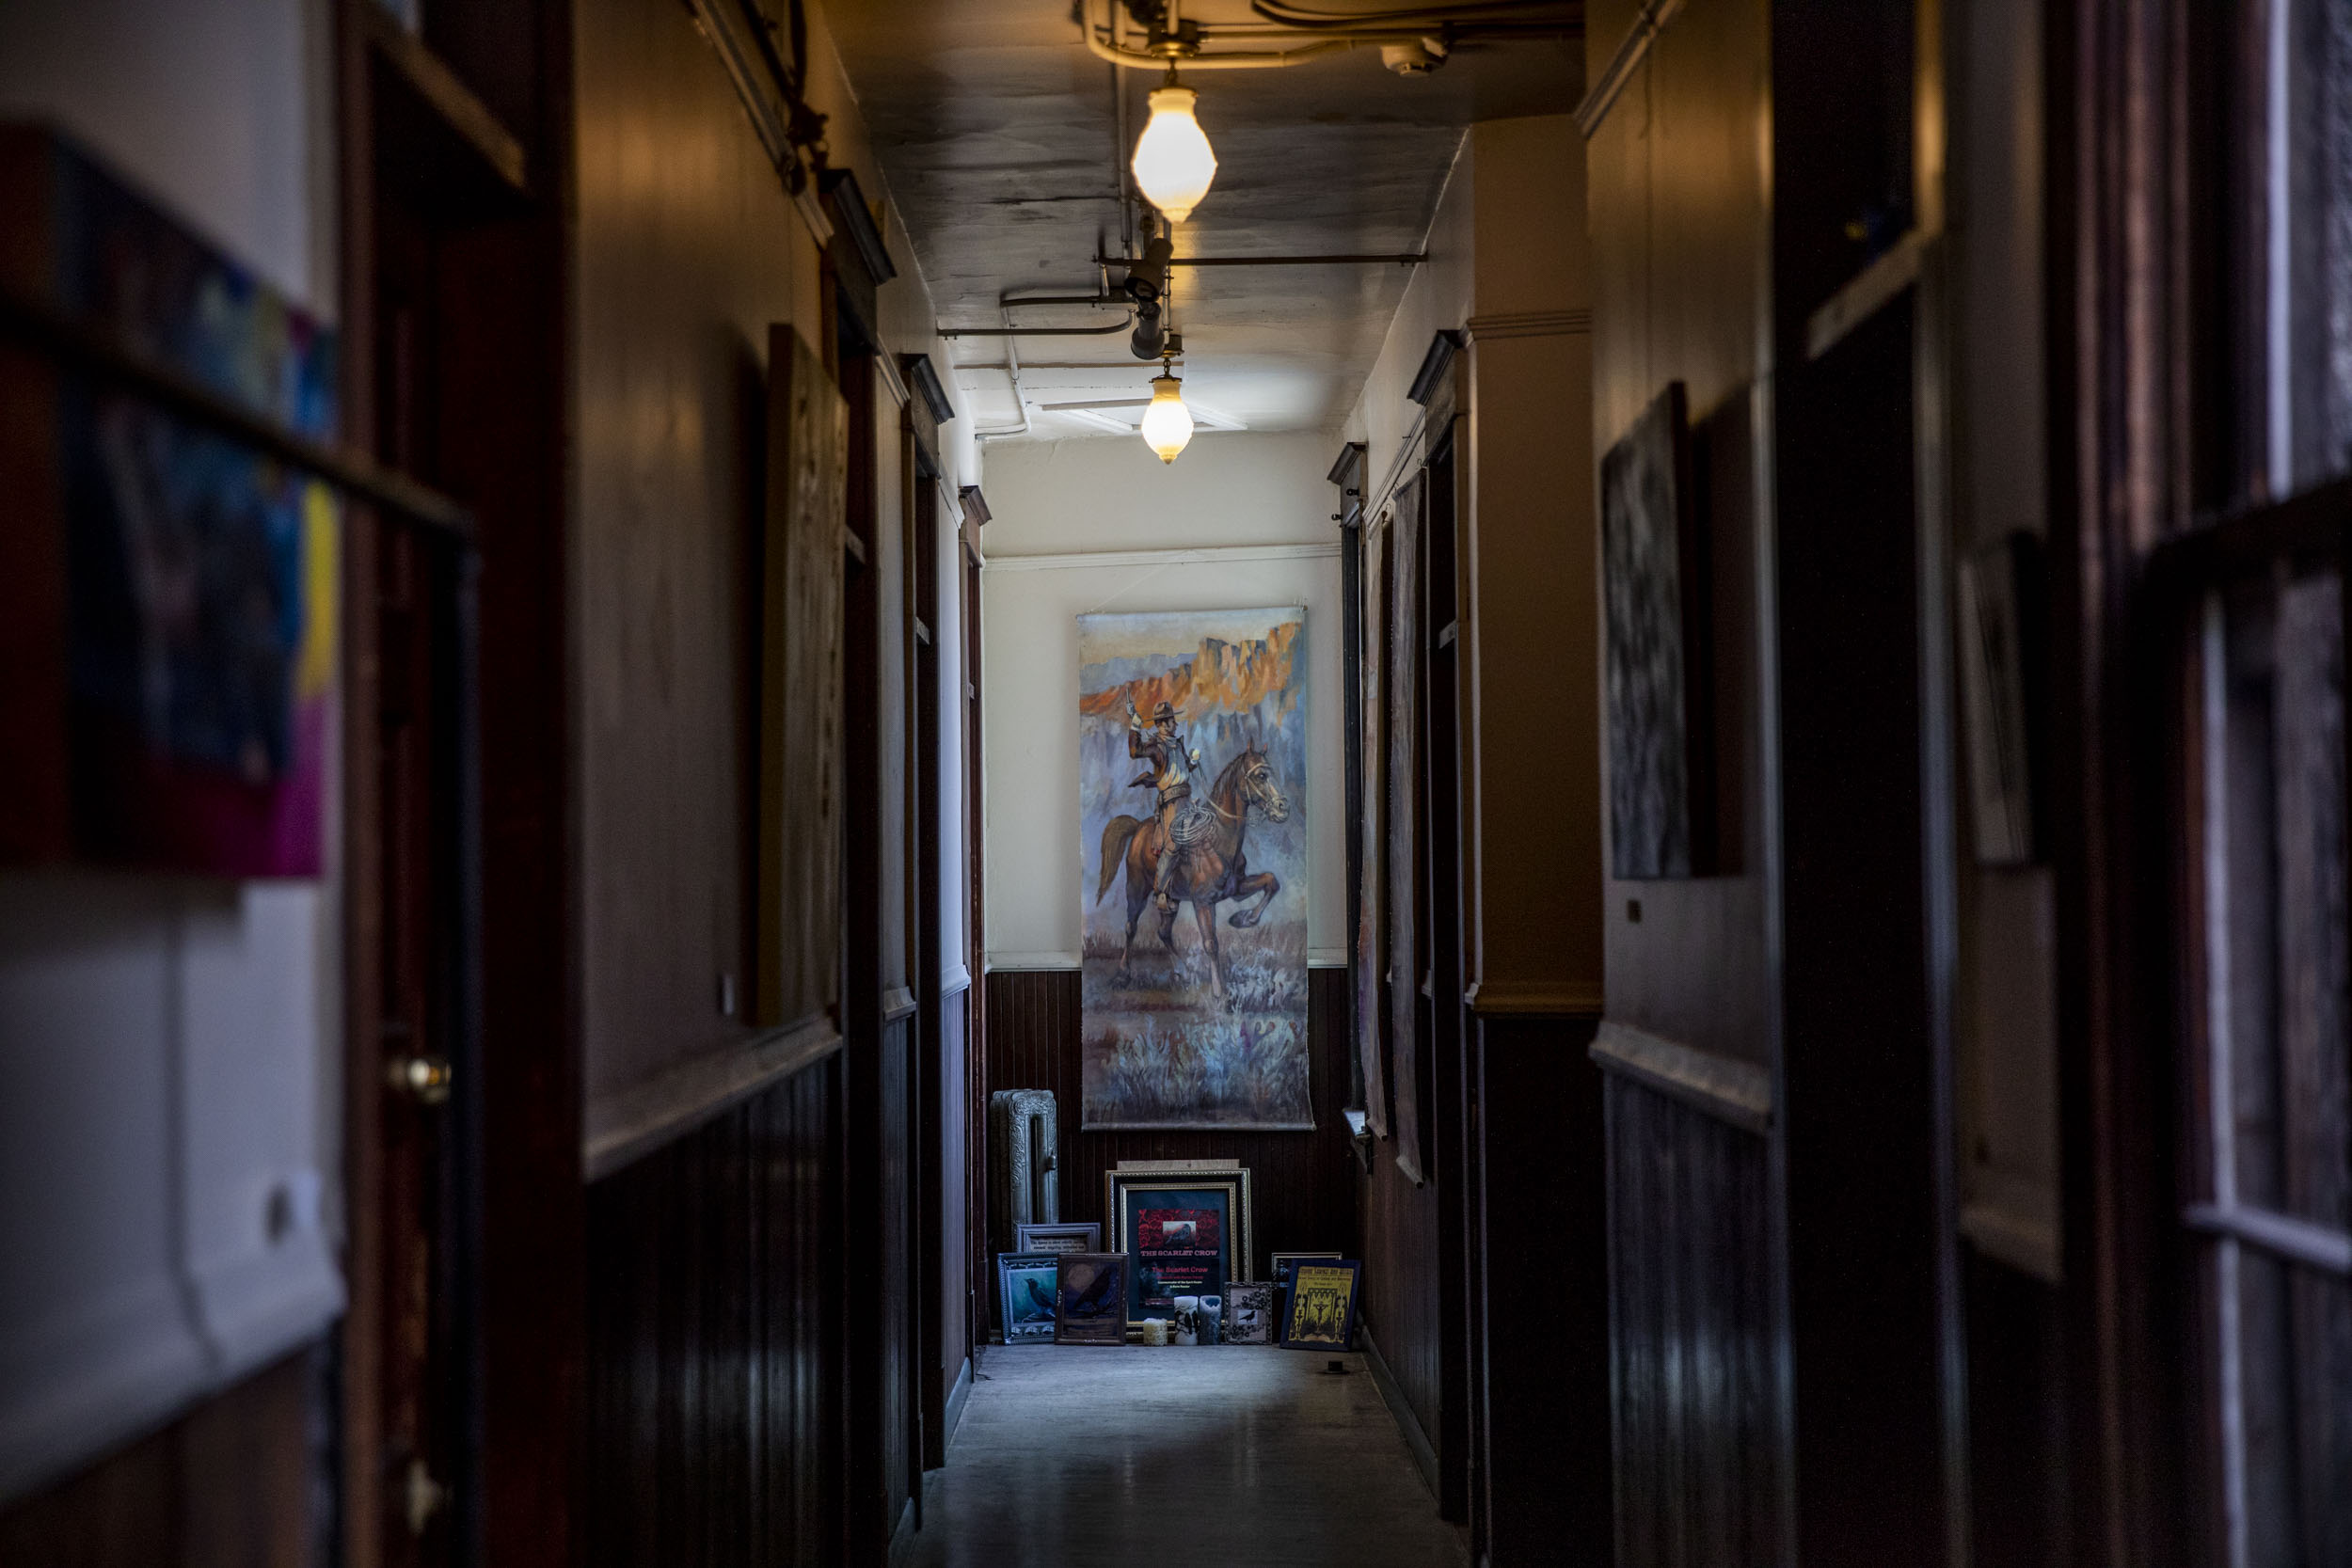 A hallway of apartments that John Bennett owns in the Georgetown neighborhood of Seattle on May 8, 2019. (Photo by Dorothy Edwards/Crosscut)